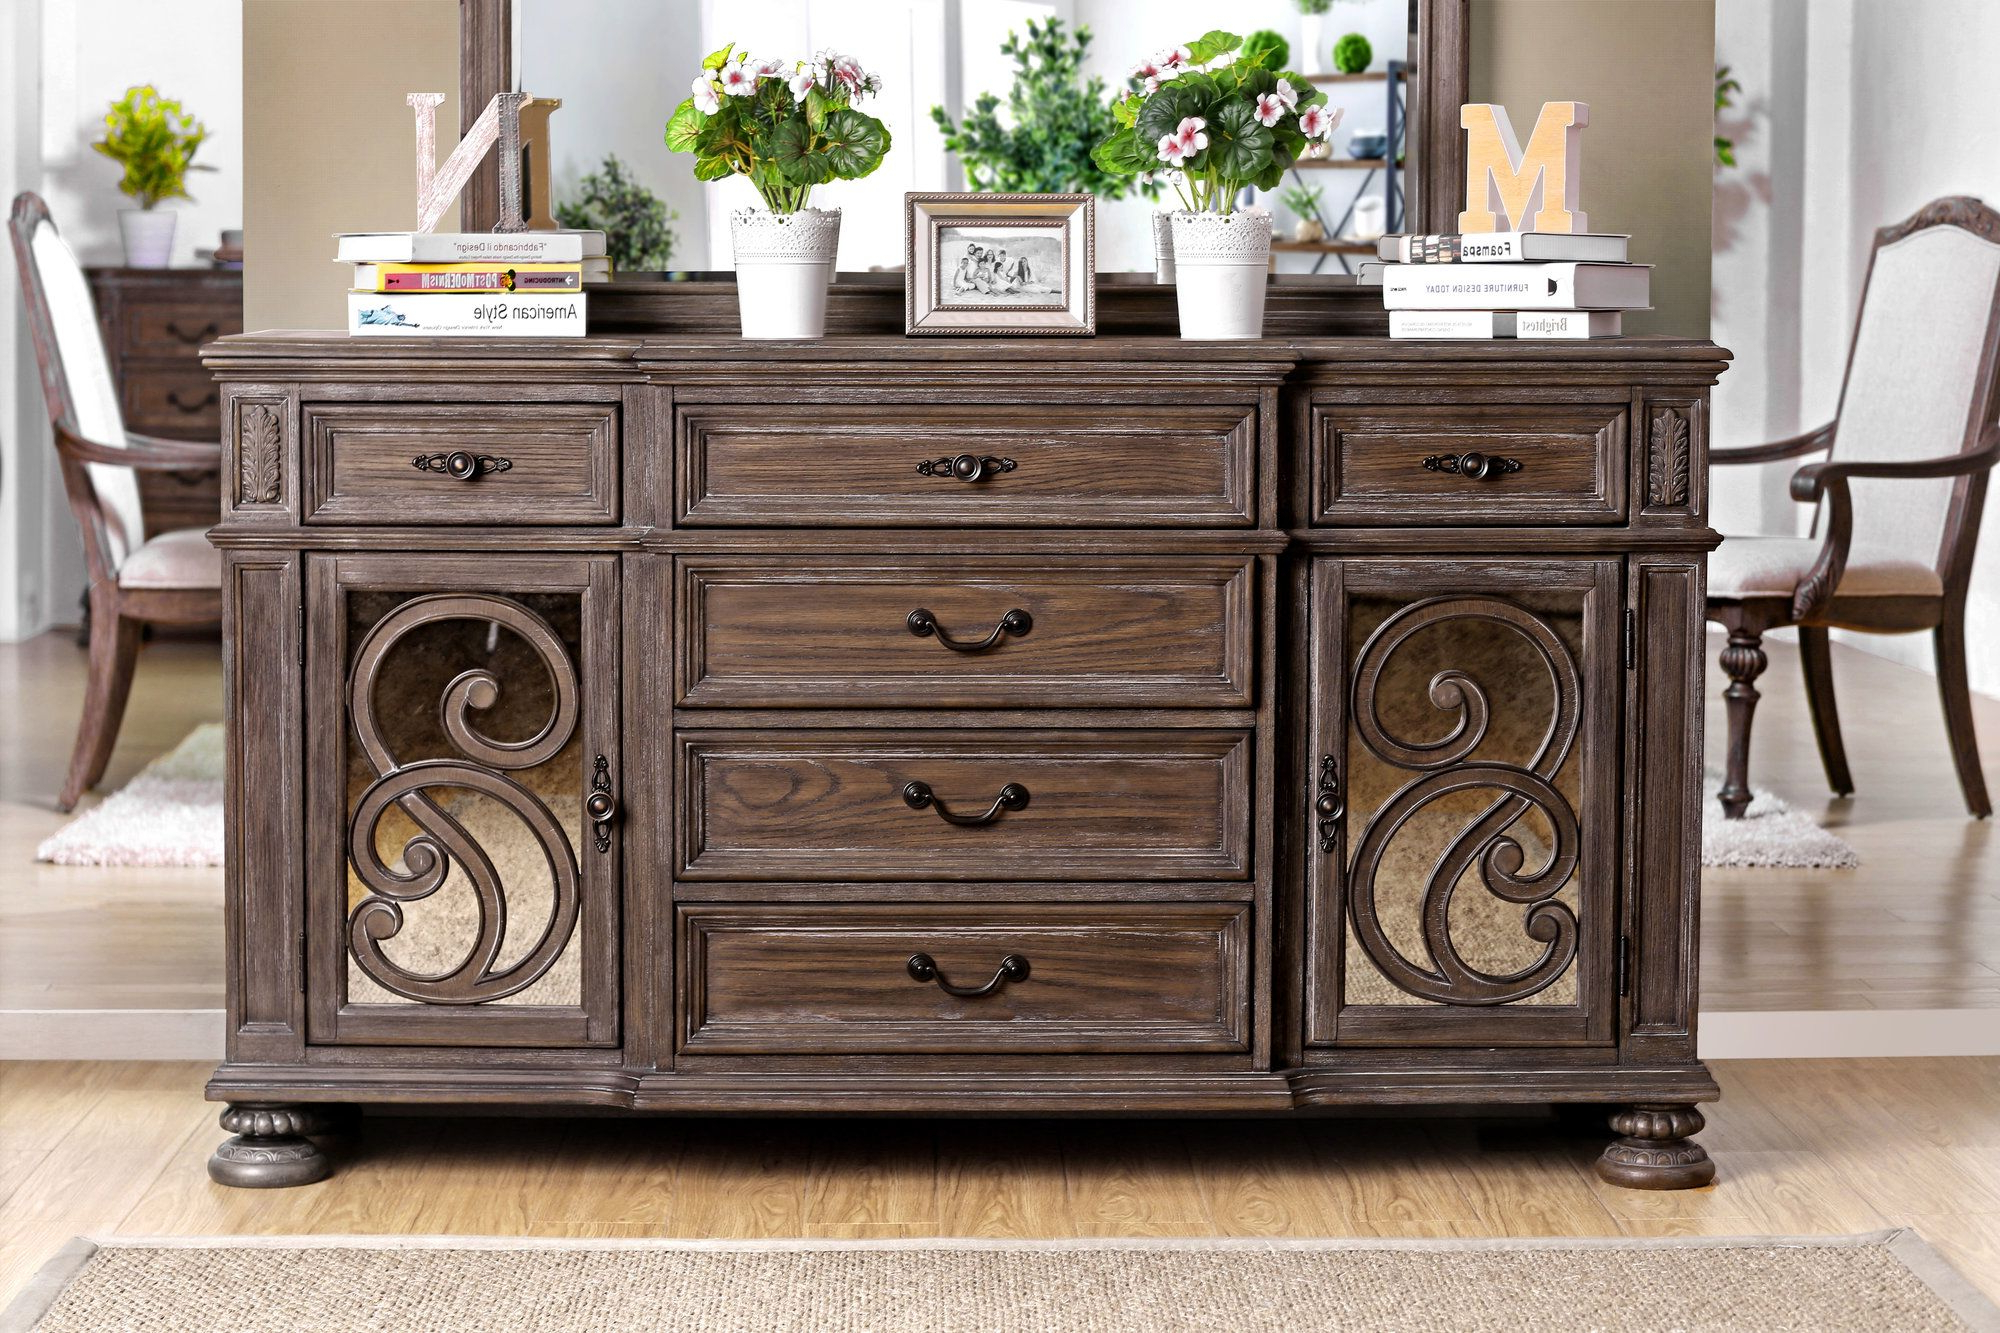 Abbottstown Sideboard | Products | Furniture, Sideboard With Regard To Kronburgh Sideboards (View 1 of 20)